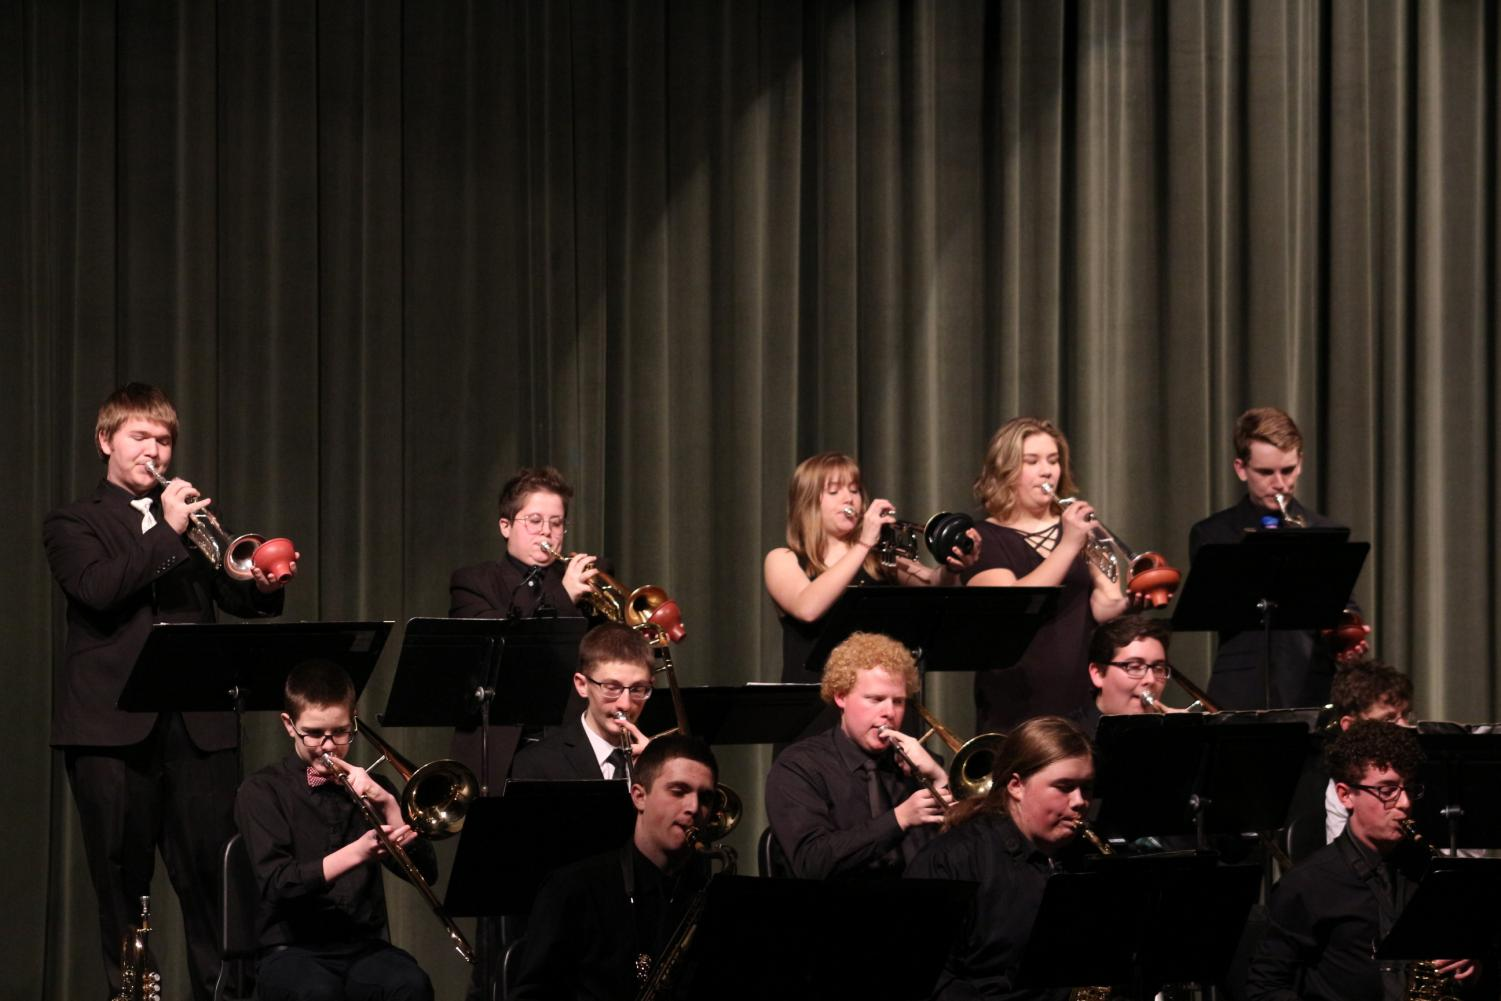 Band Concert Photo Gallery (Photos by Abby Glanville)